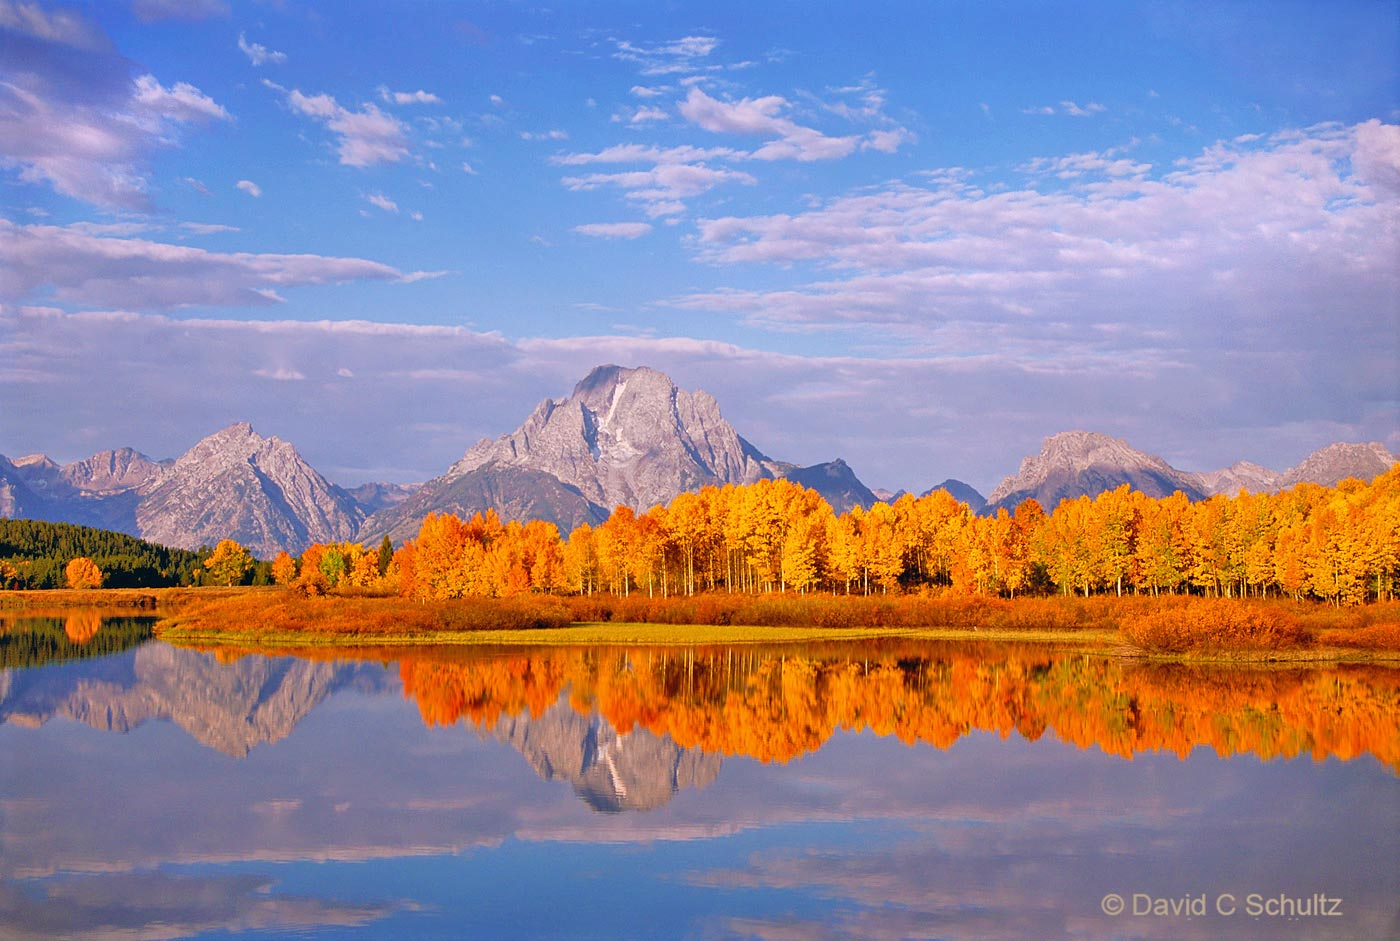 Teton National Park, WY - Image #44-1414